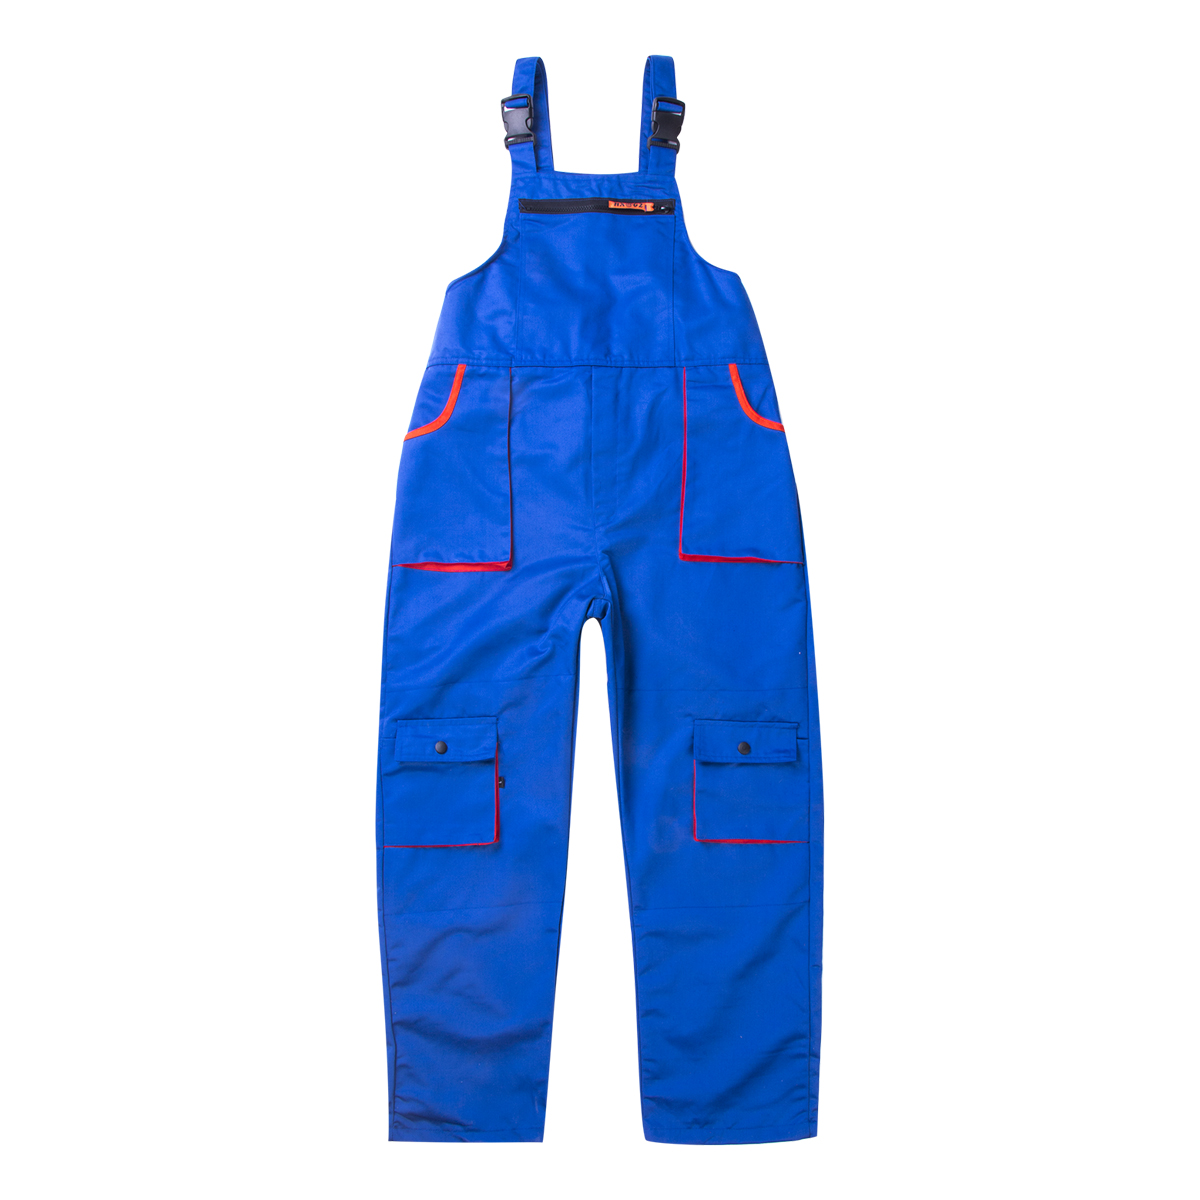 Men's Tooling Bib Fashion Heavy Duty Work Jumpsuit Coveralls Overalls Mechanic Indoor House Work Wears Male Functional Clothing